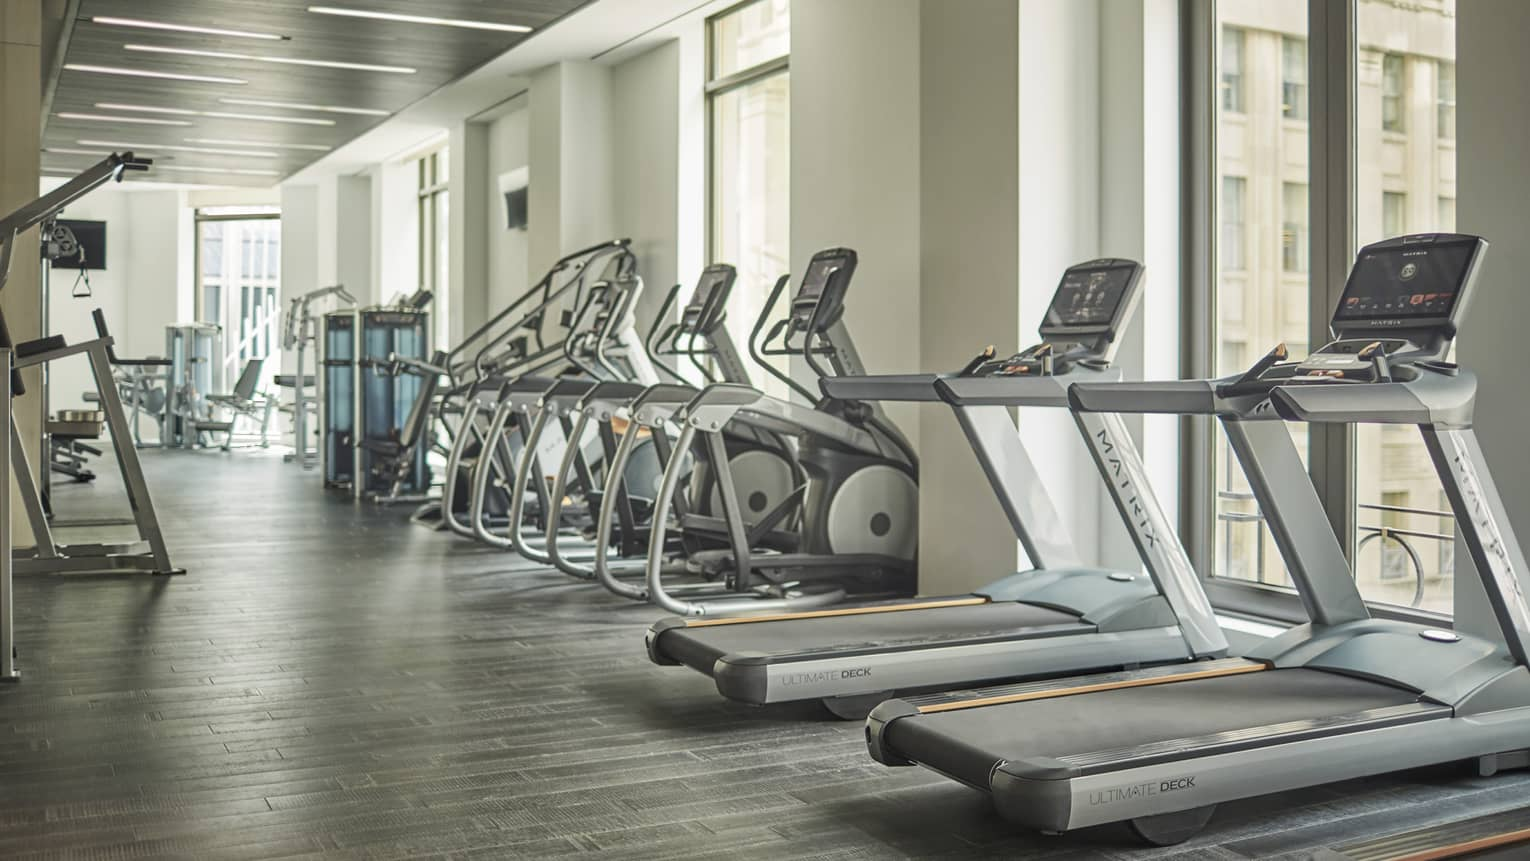 Treadmills, cardio machines in row by windows in Fitness Centre